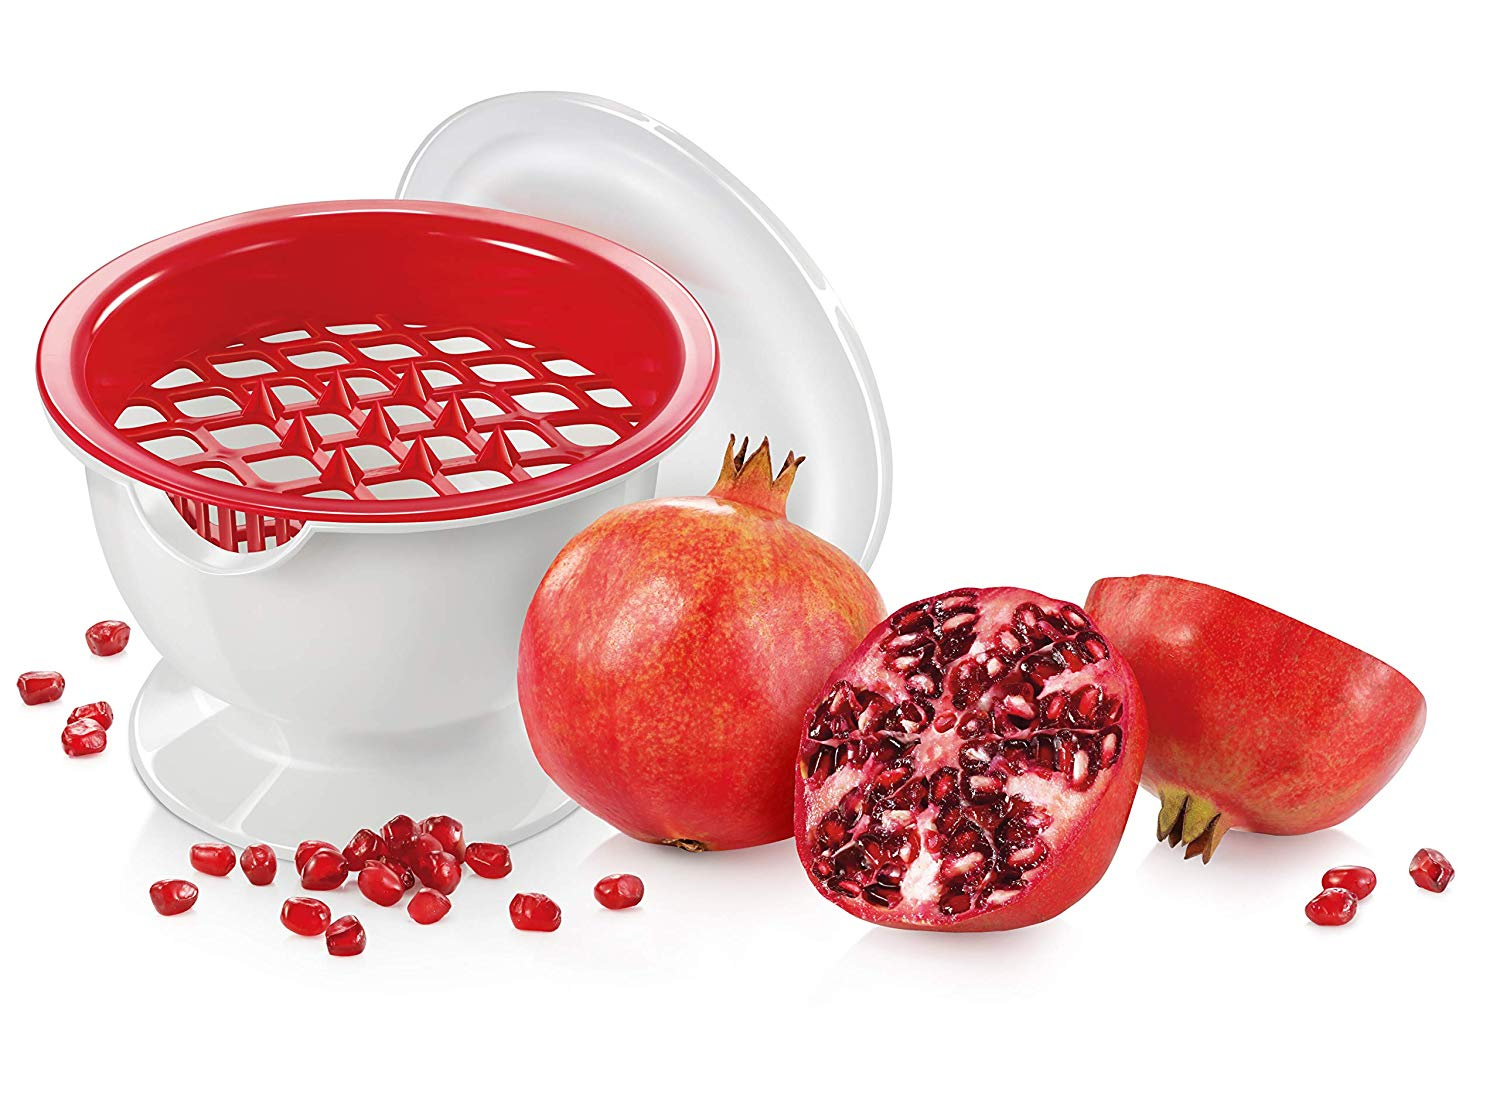 Red Pomegranate Stoner Metaltex Granada Pomegranate Deseeder and Pitter Food Preparation & Tools Peelers & Slicers